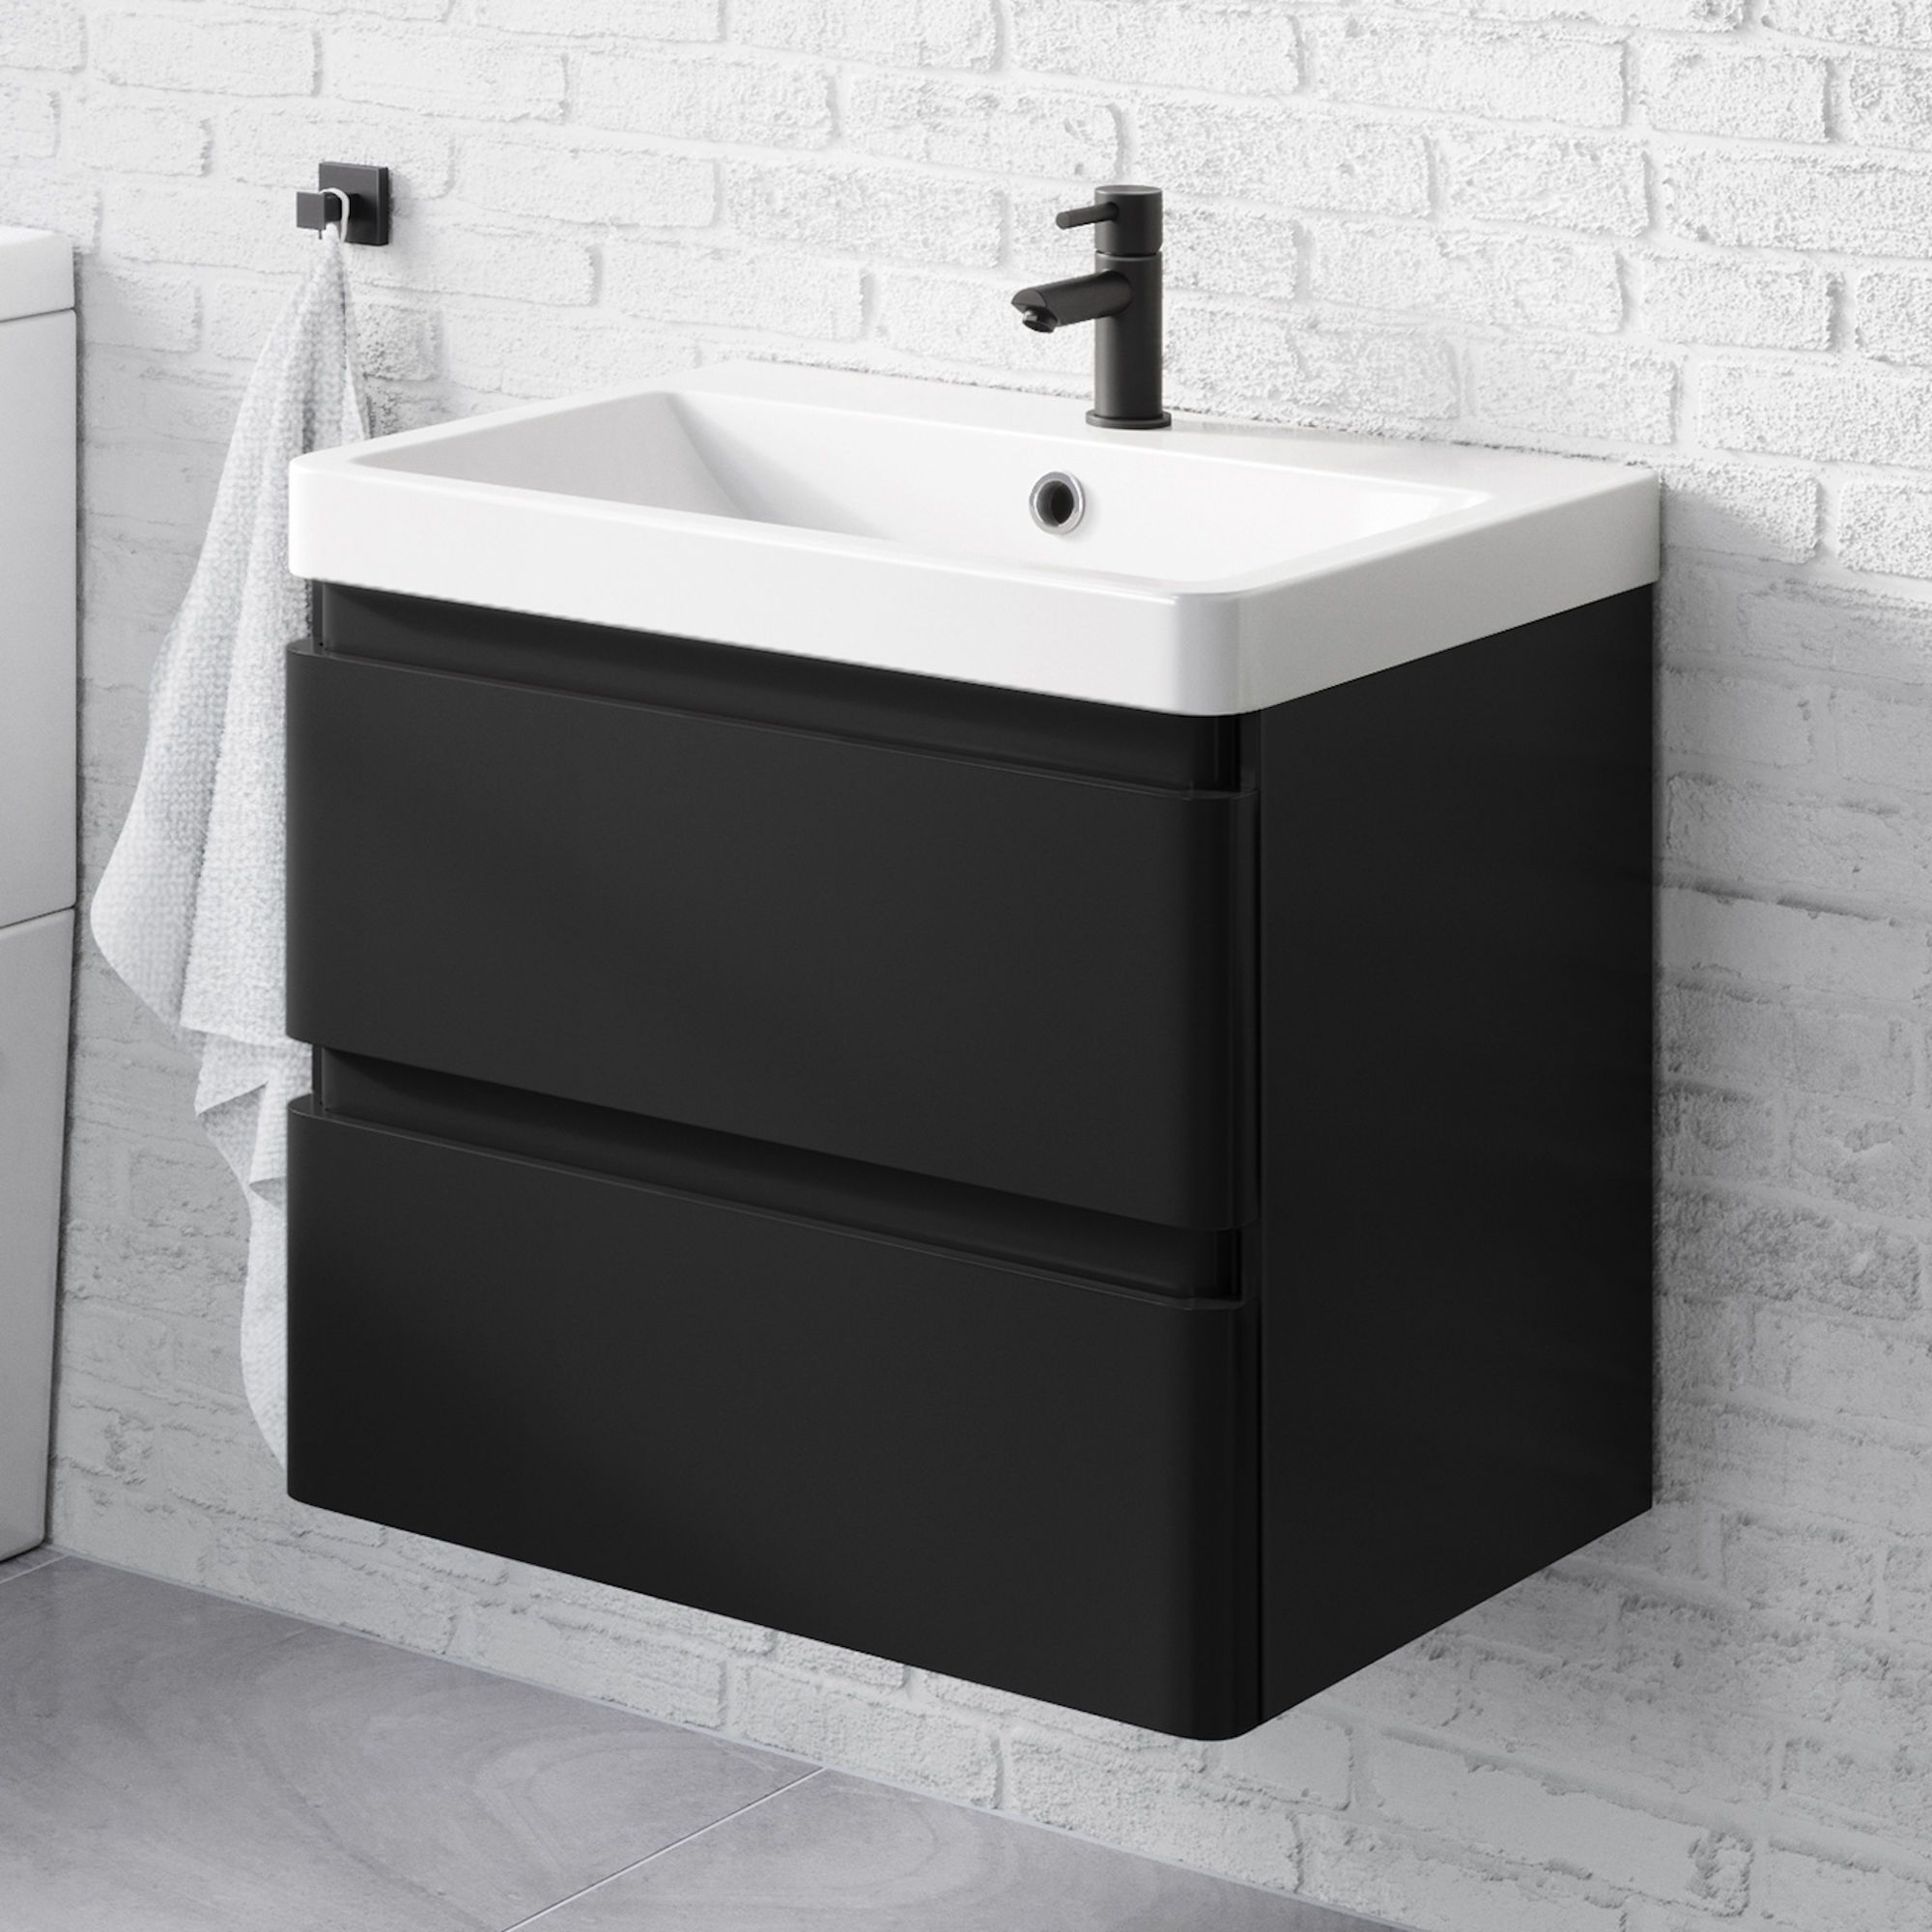 600mm Denver Matte Black Built In Basin Drawer Unit With Sink